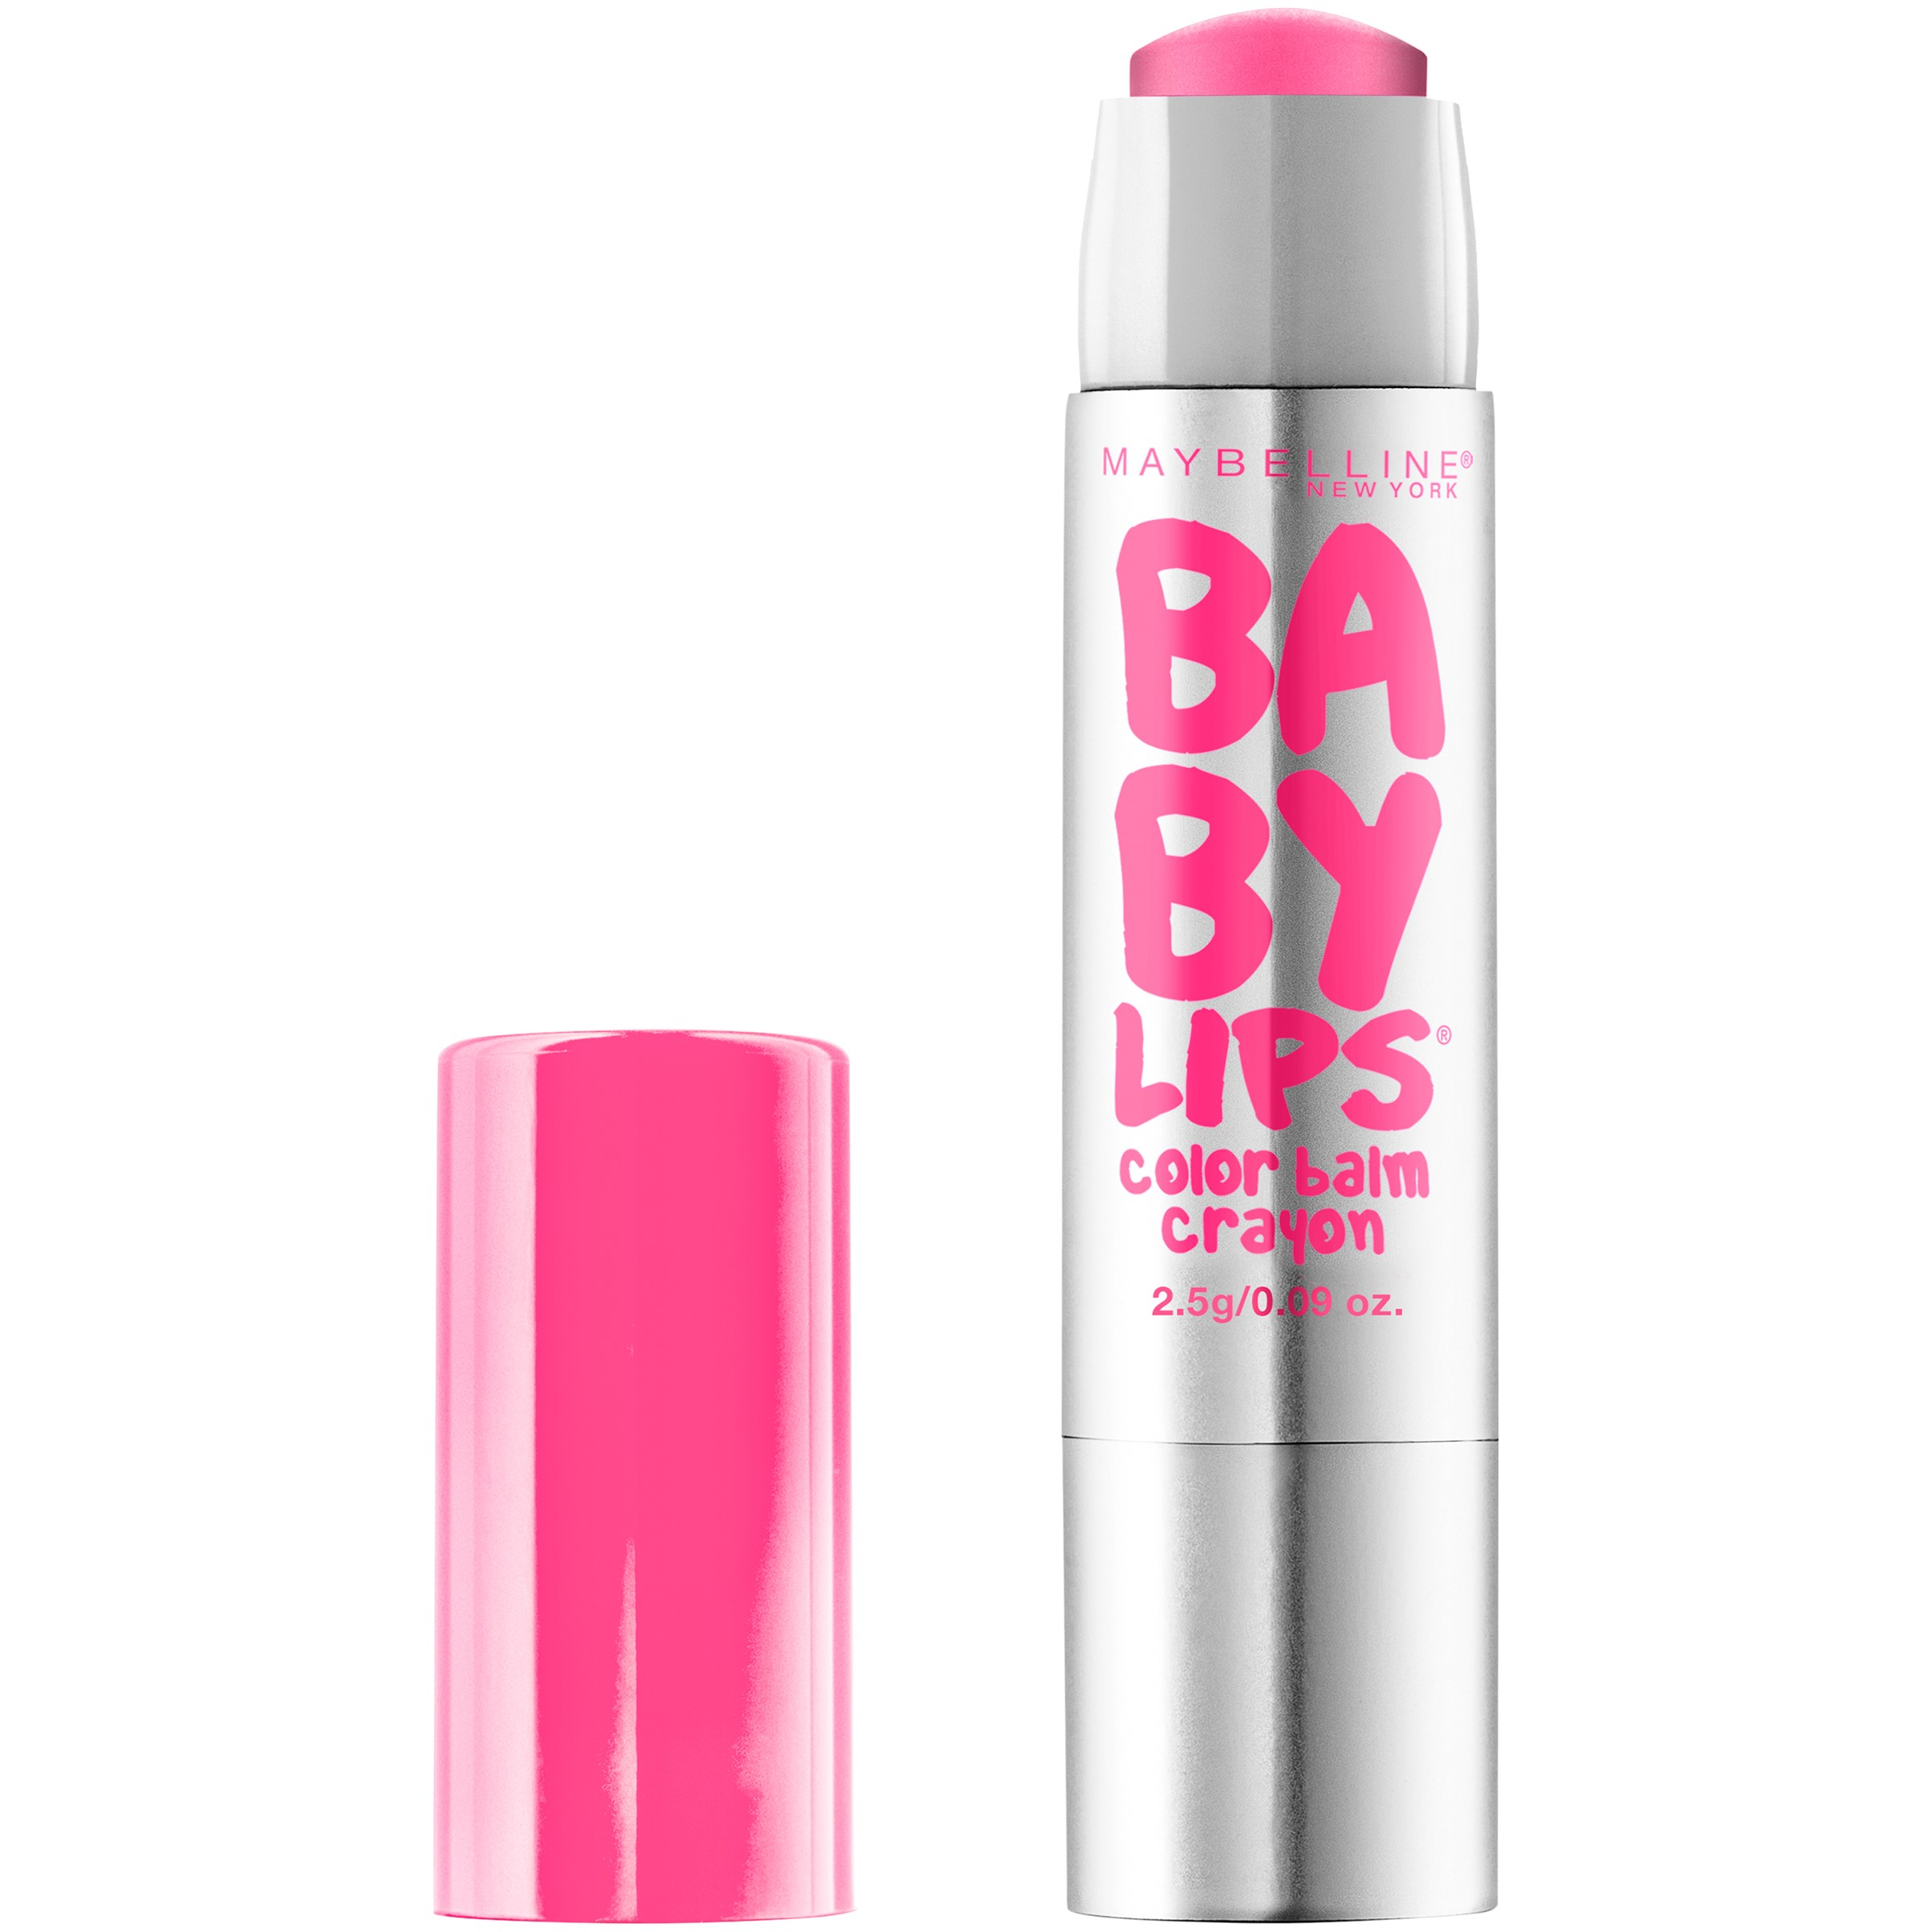 Maybelline New York Baby Lips Color Balm Crayon, Blush Burst